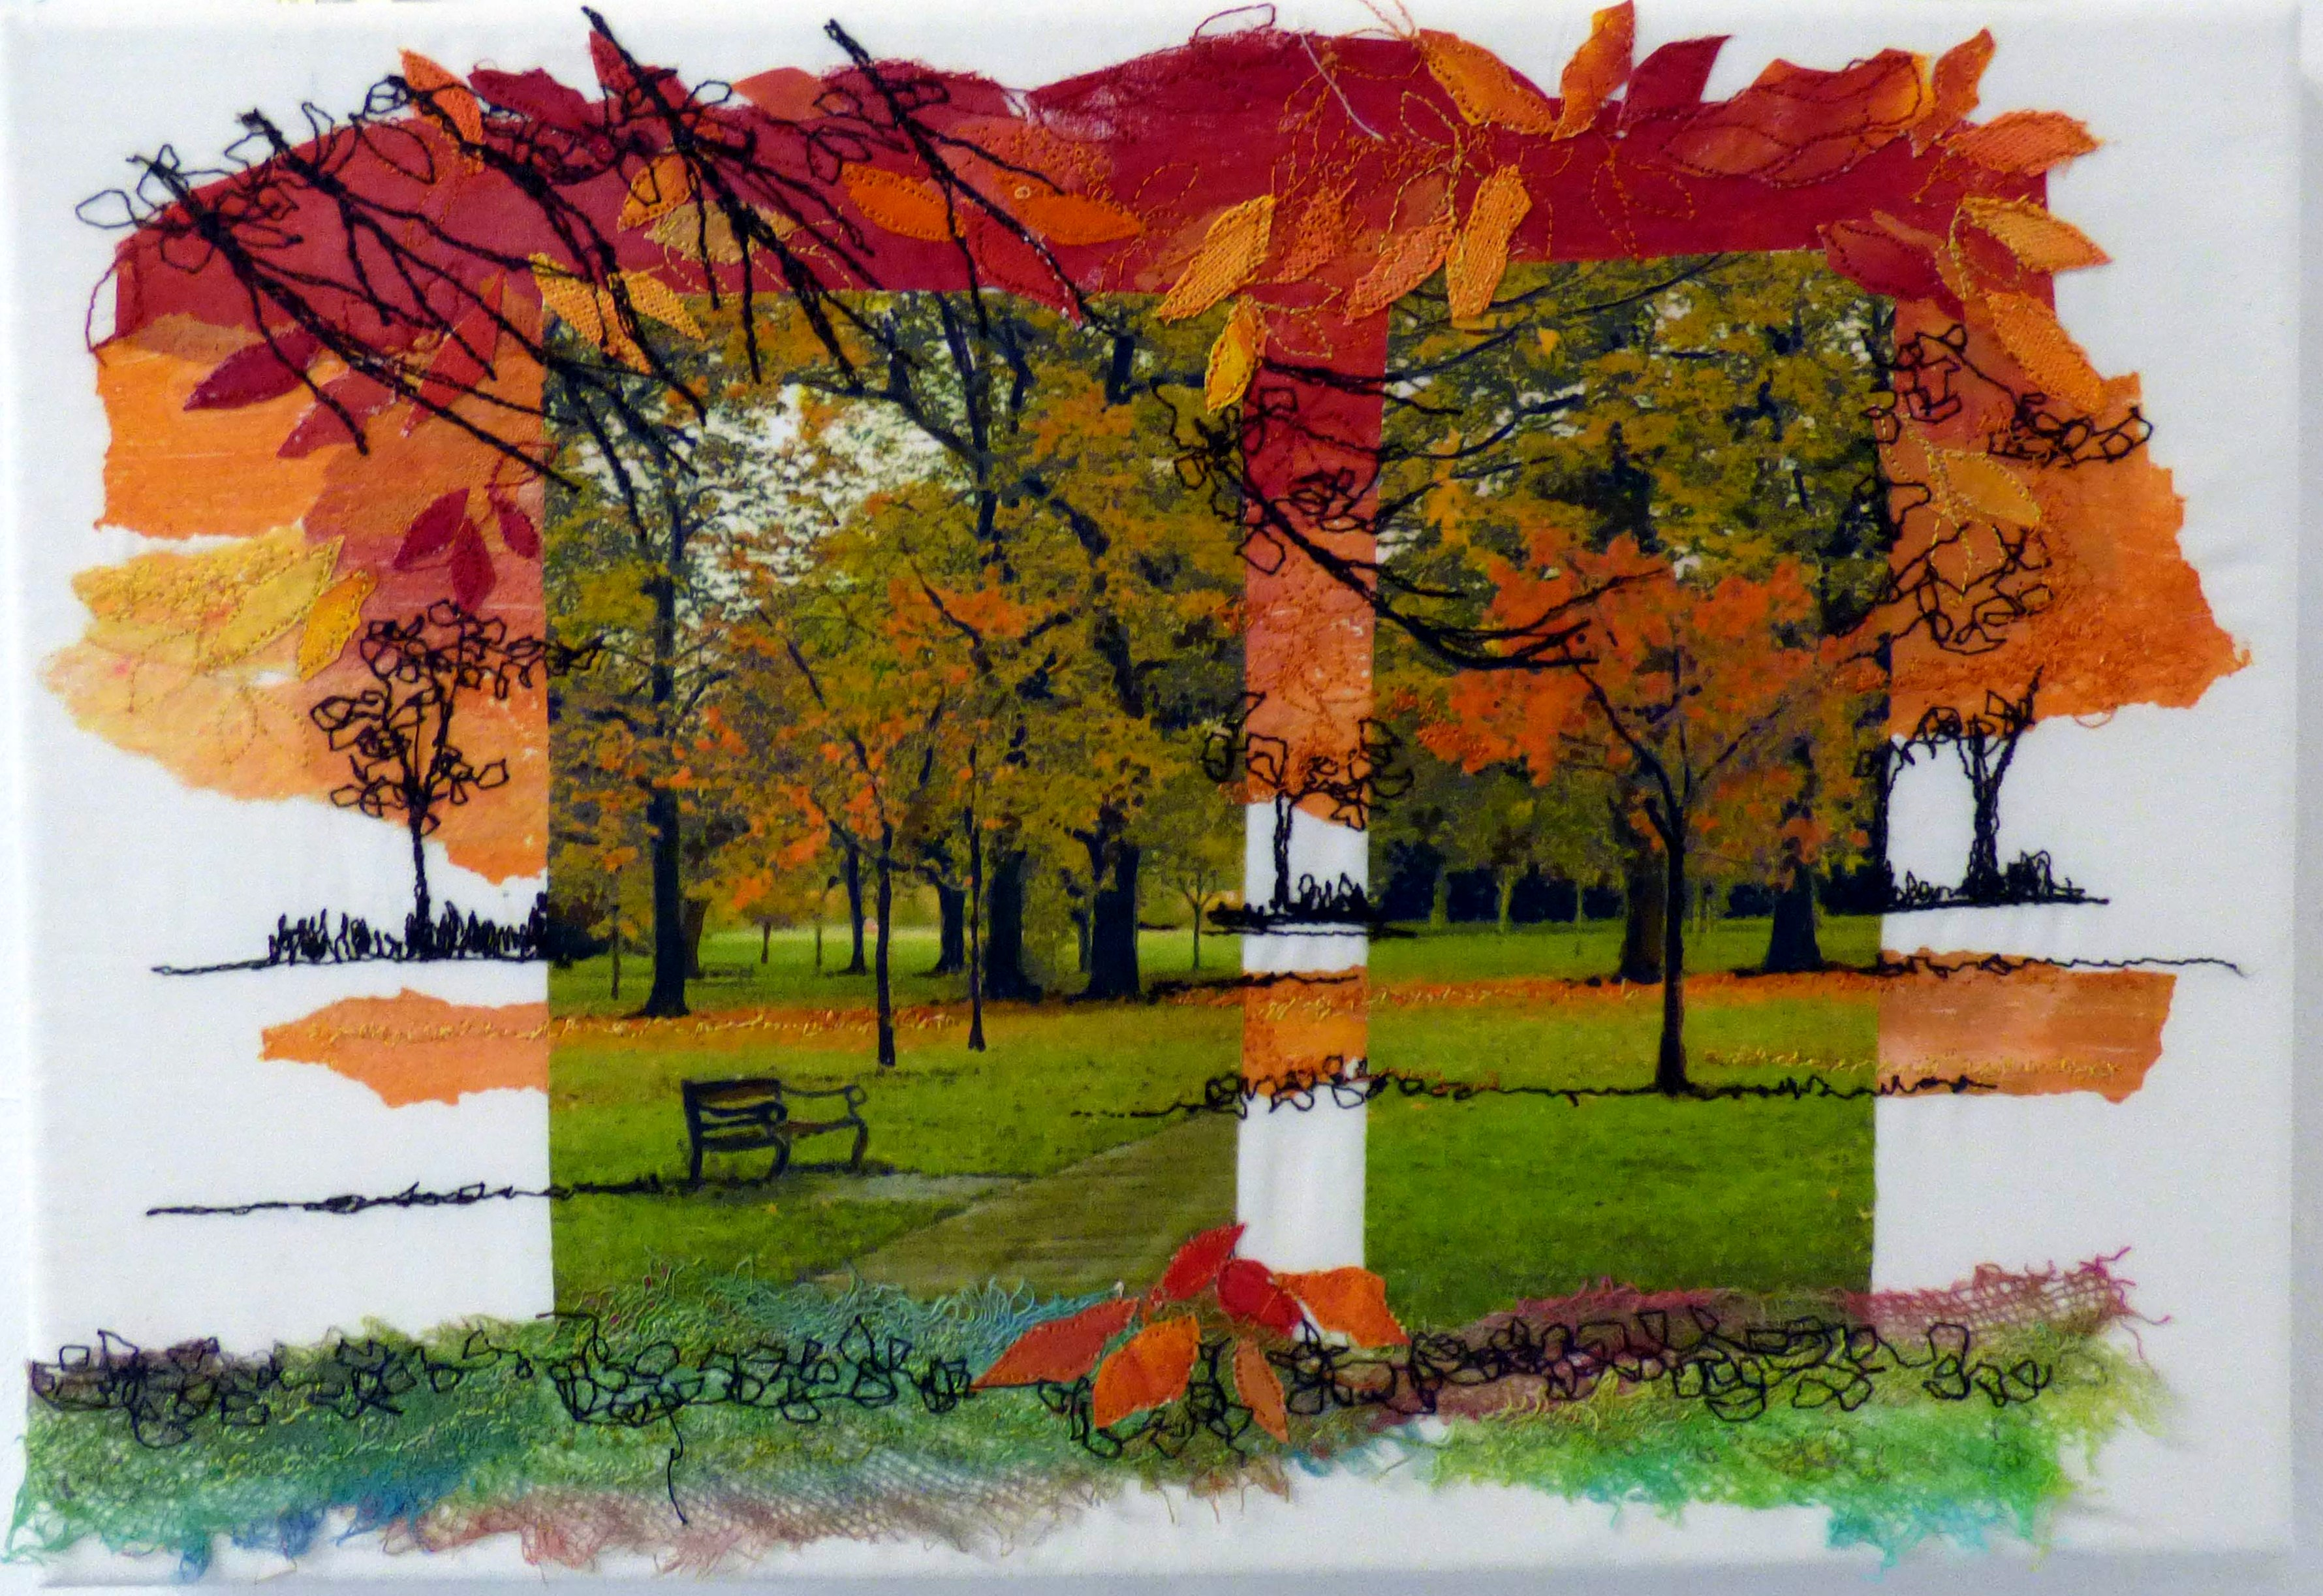 AUTUMN SKETCH by Nicky Robertson, Natural Progression Group, July 2021